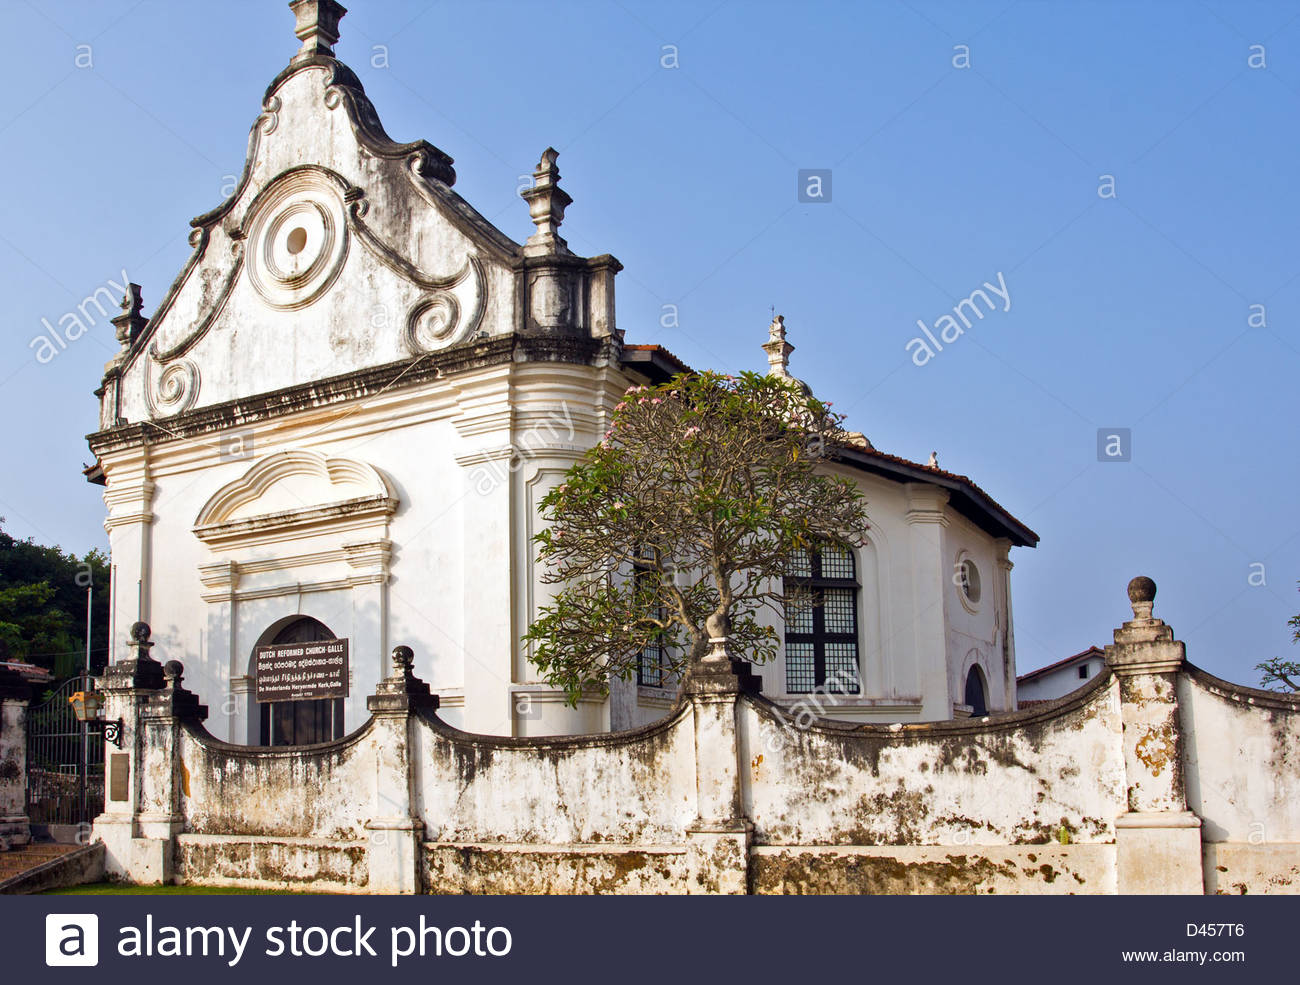 Dutch Reformed Church Oranjestad, THE OLD DUTCH REFORMED CHURCH IN FORT GALLE WHICH CONTAINS SEVERAL ...